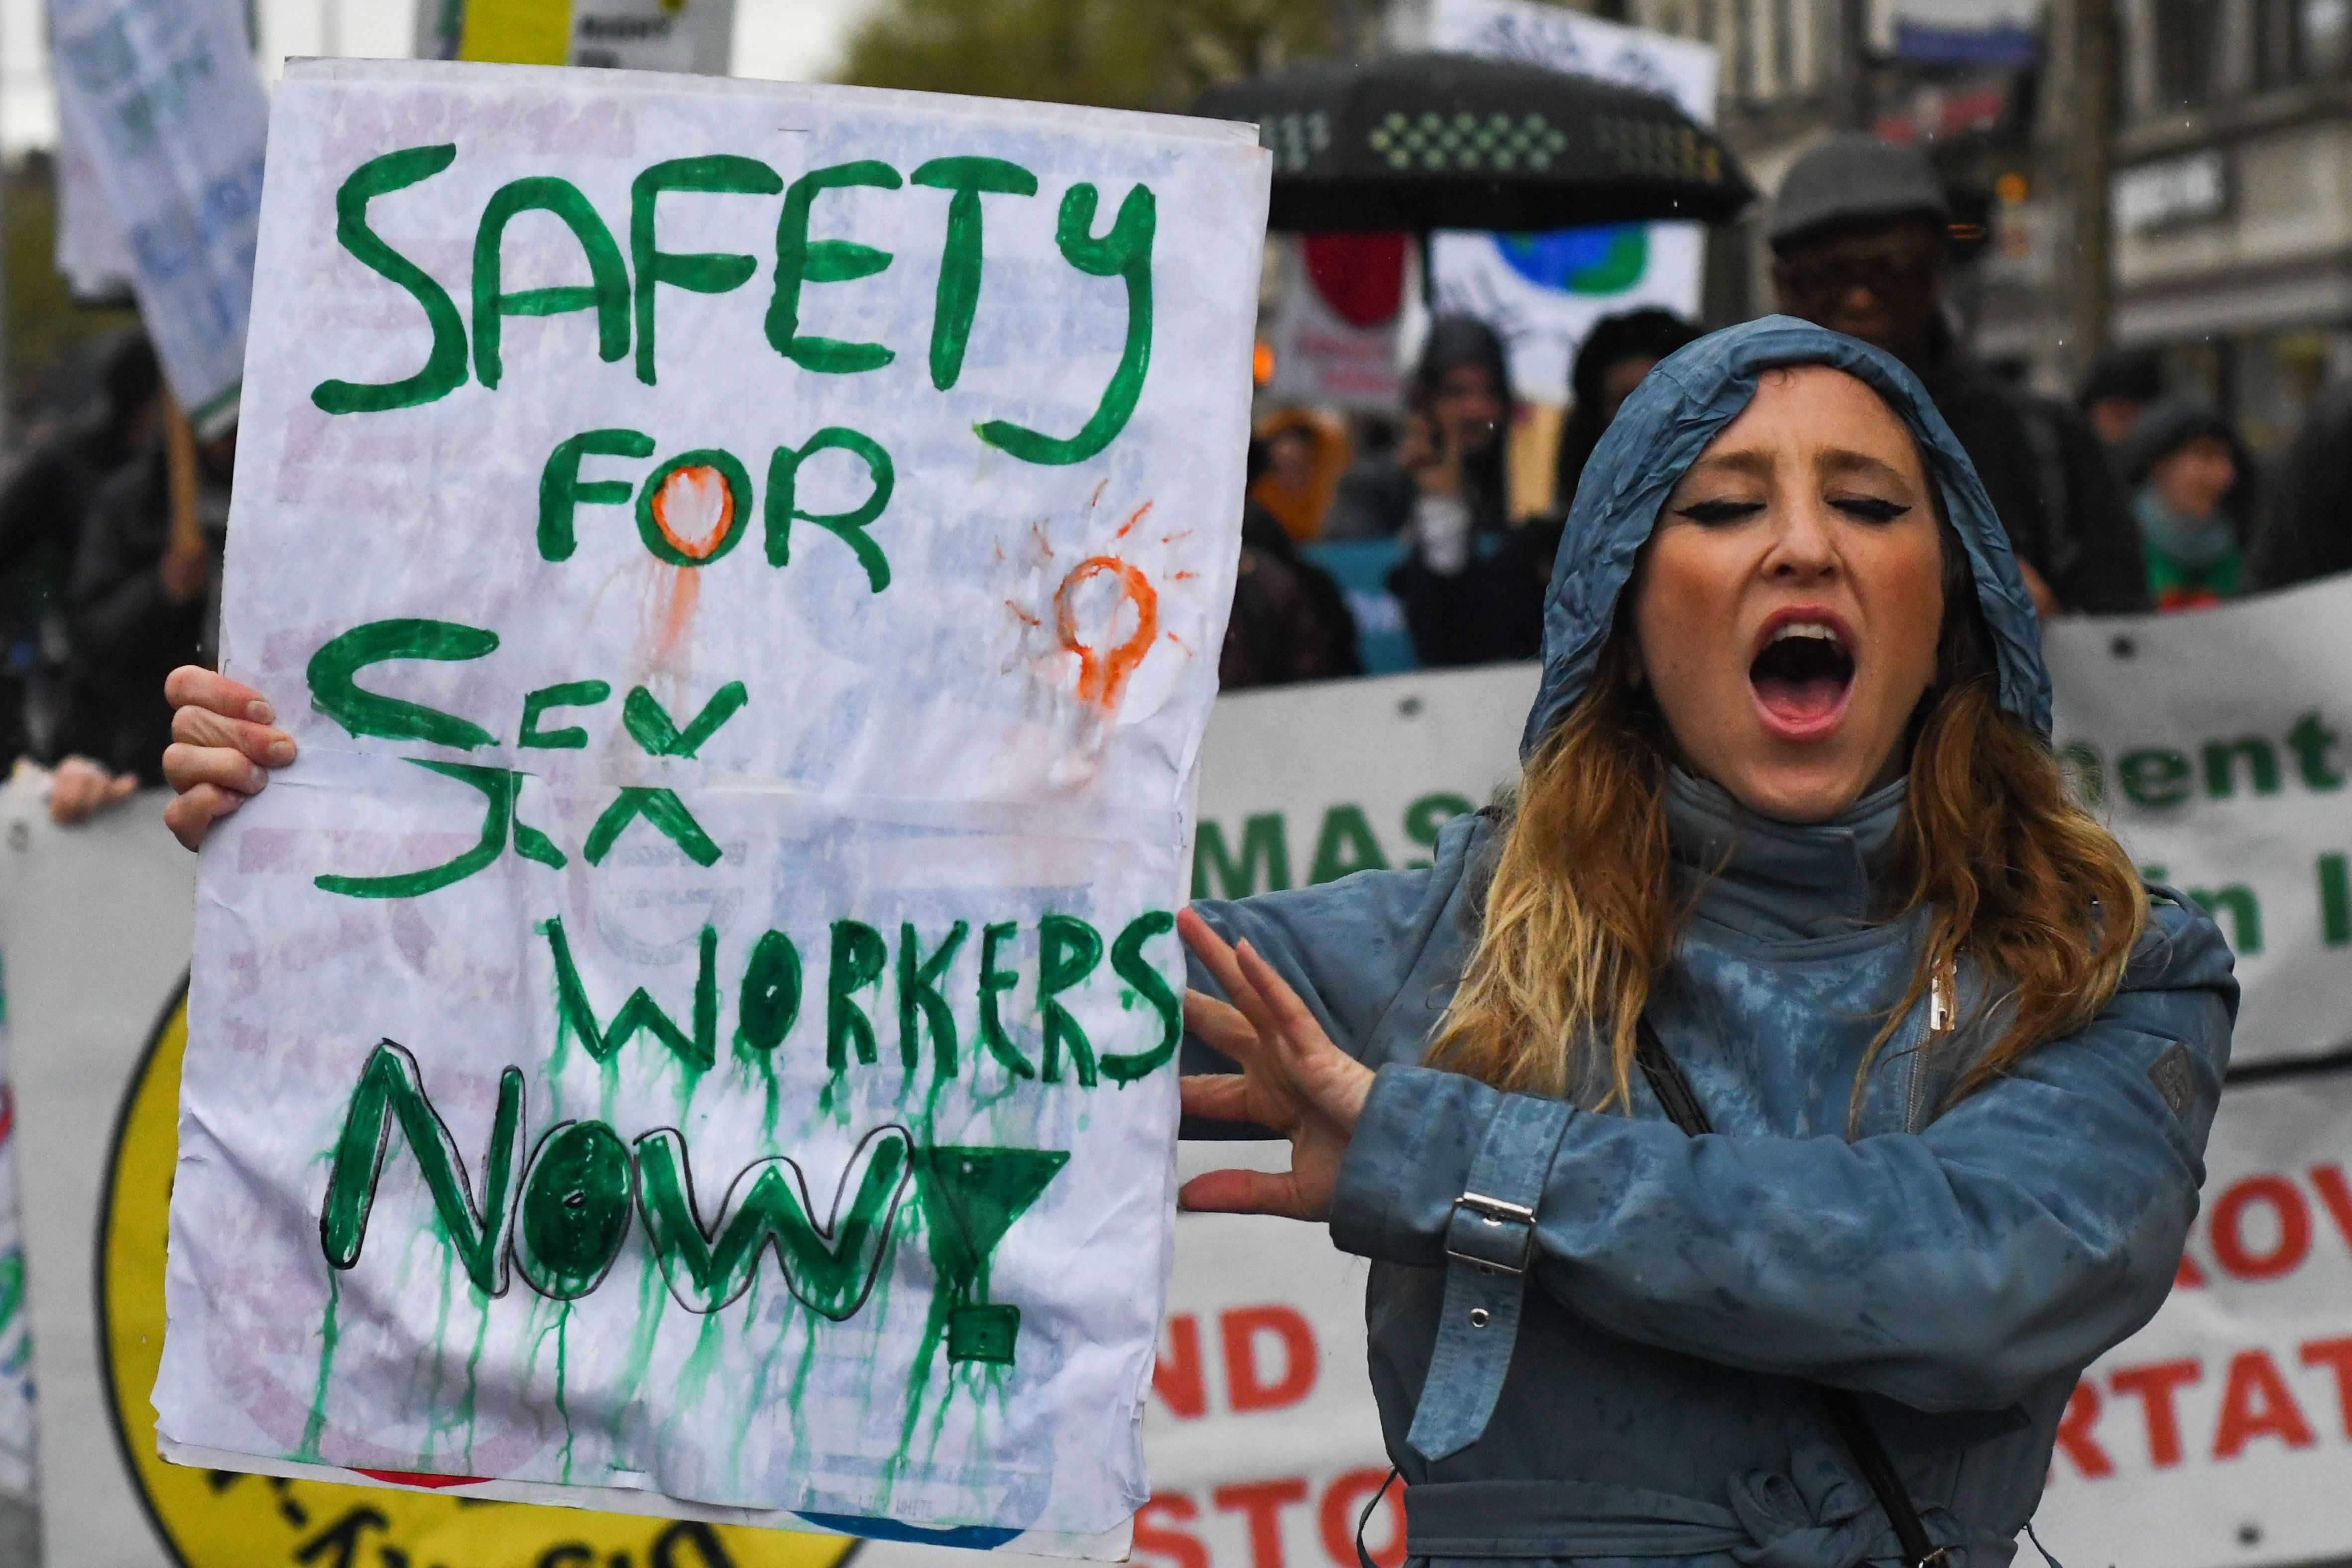 A young woman holds 'Safety for Sex Workers Now!' sign during an annual May Day march for workers' rights. On Tuesday, May 1, 2018, in Dublin, Ireland. (Photo by Artur Widak/NurPhoto via Getty Images)